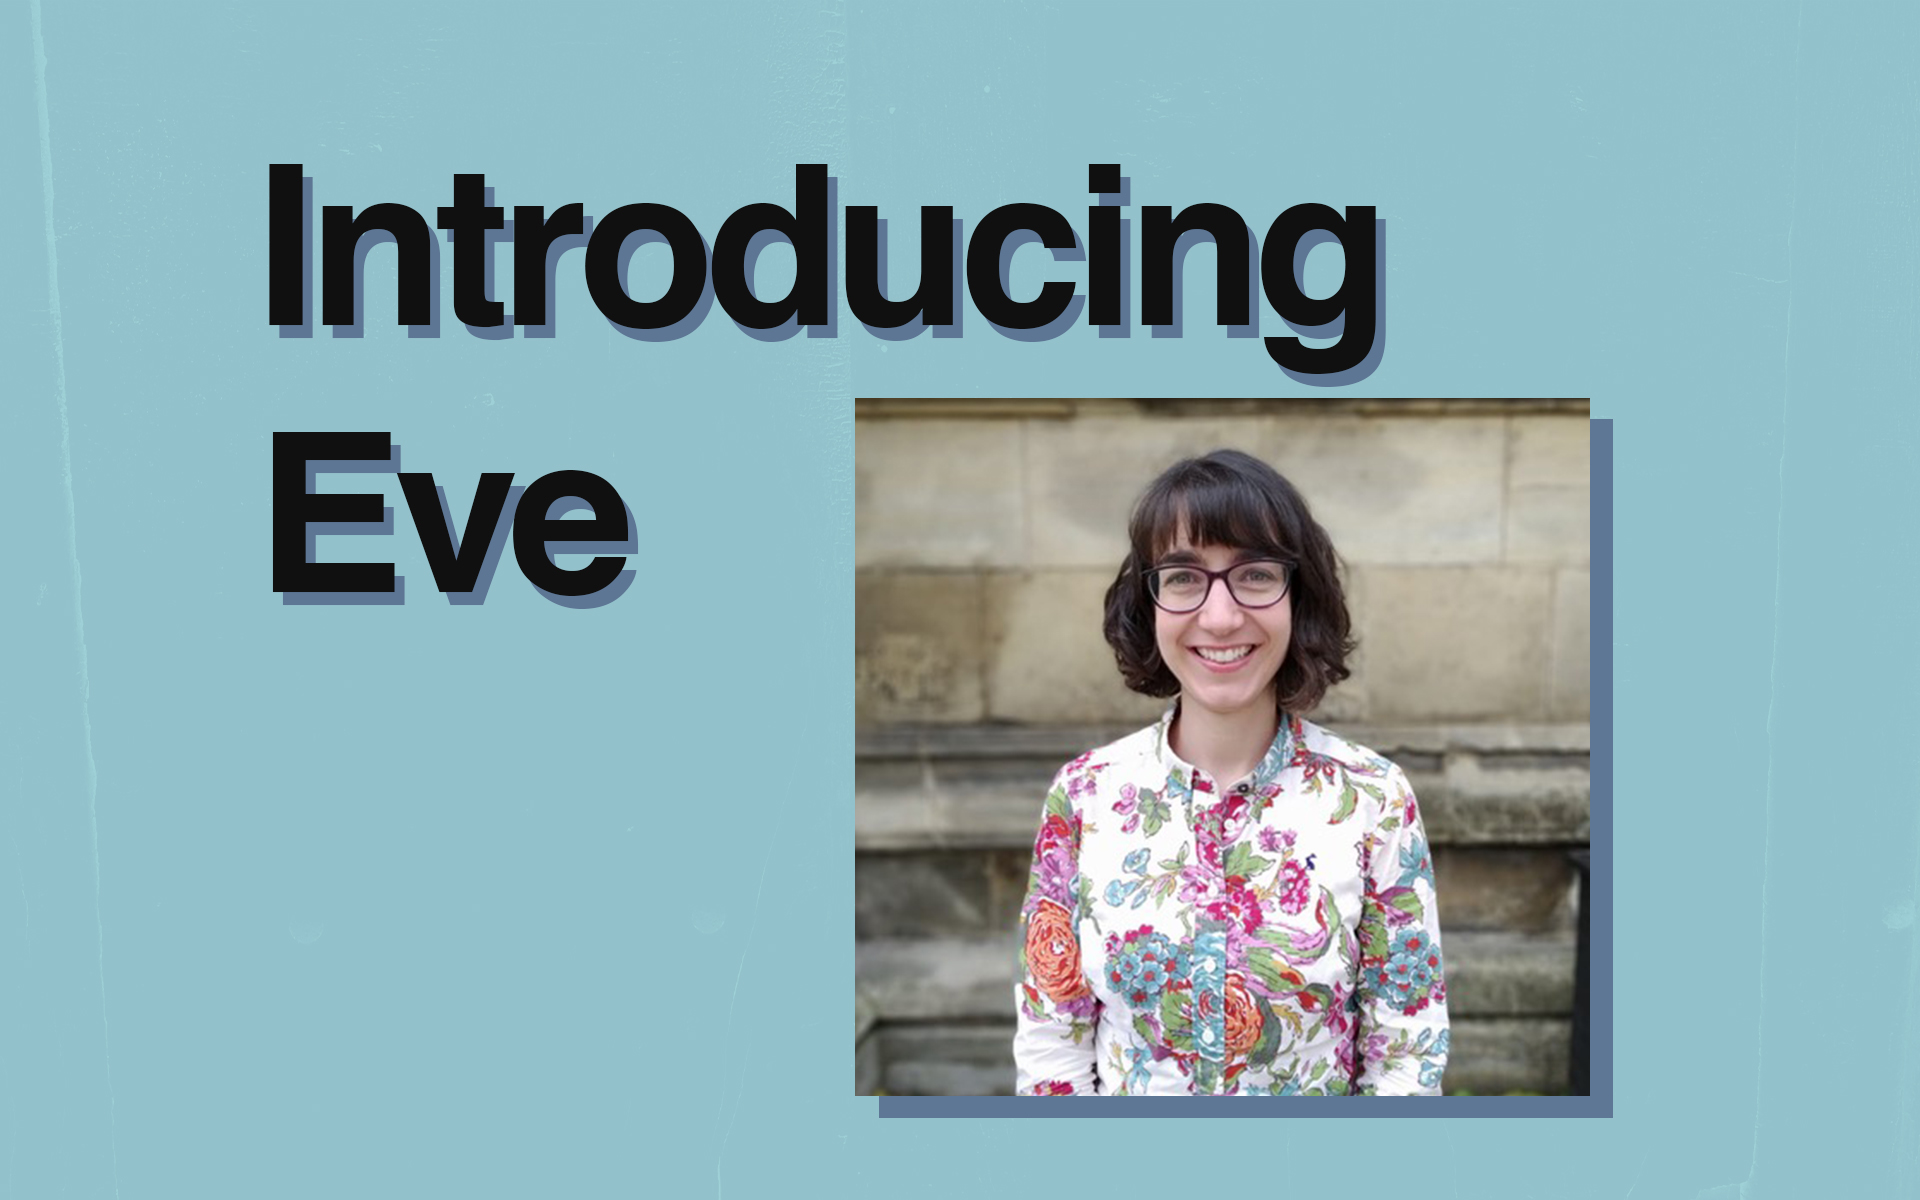 introducing Eve.jpg